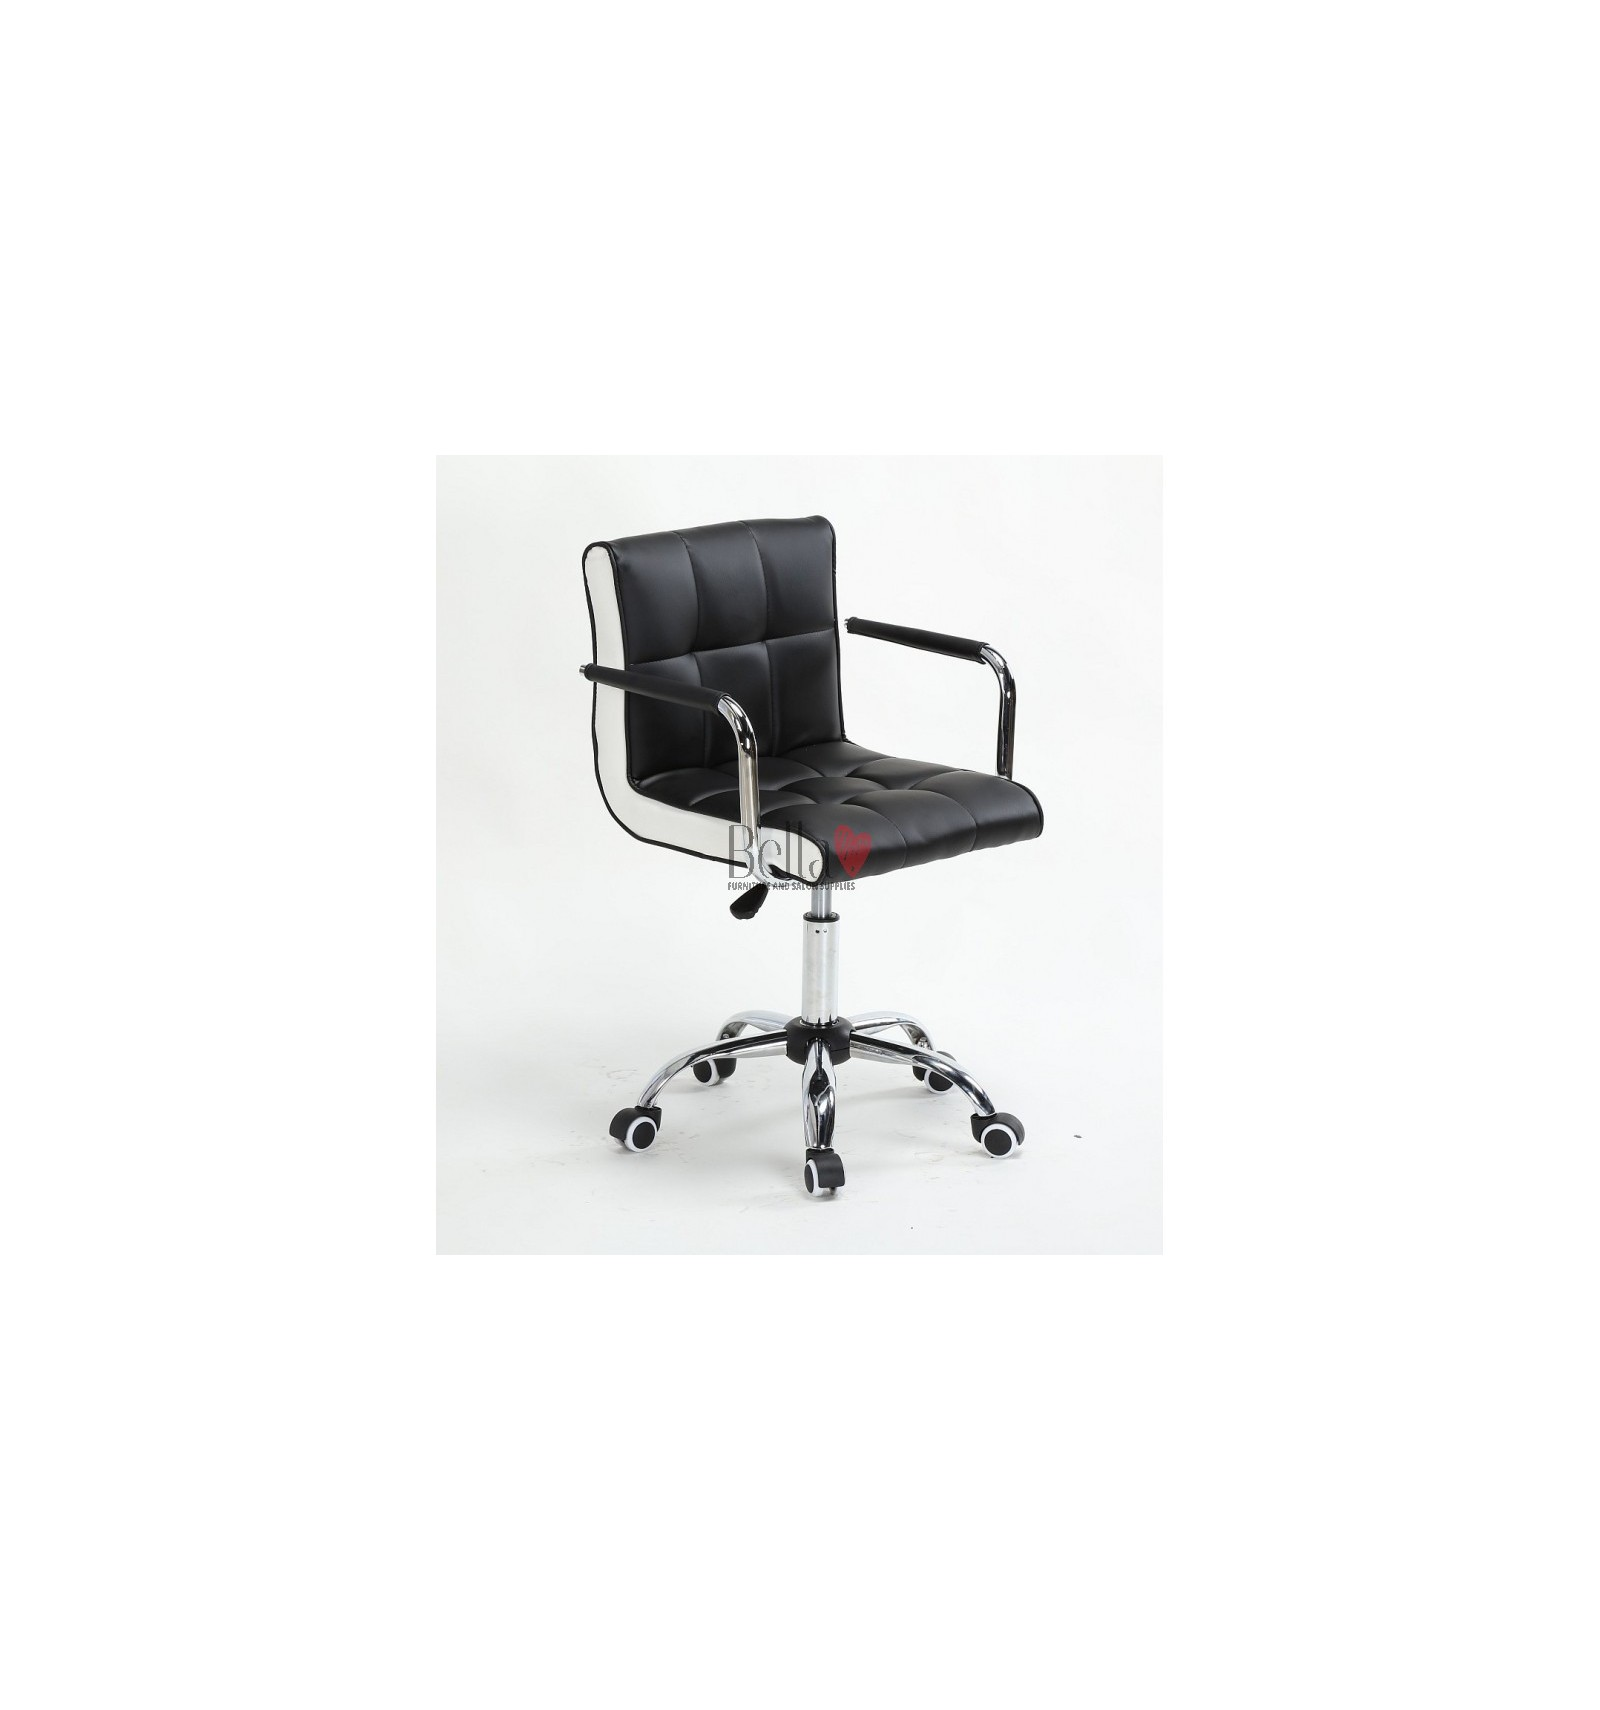 Nail Salon chairs for sale. Stylish chairs for nail salons Dublin.